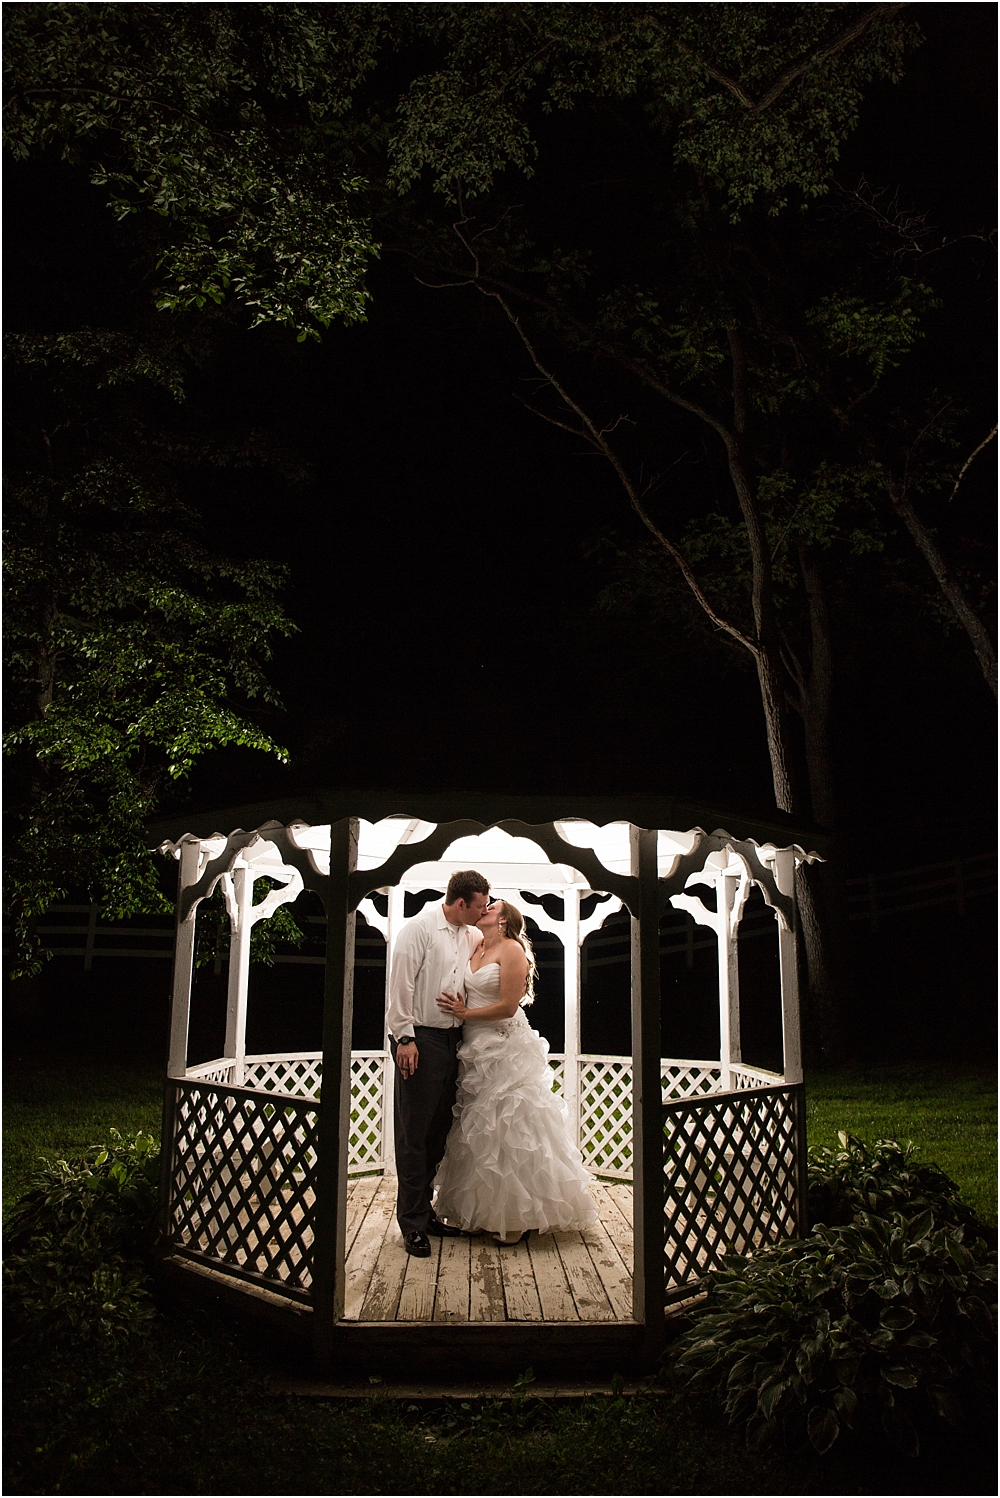 randolph wedding parkton private residence tent wedding living radiant photography photos_0098.jpg